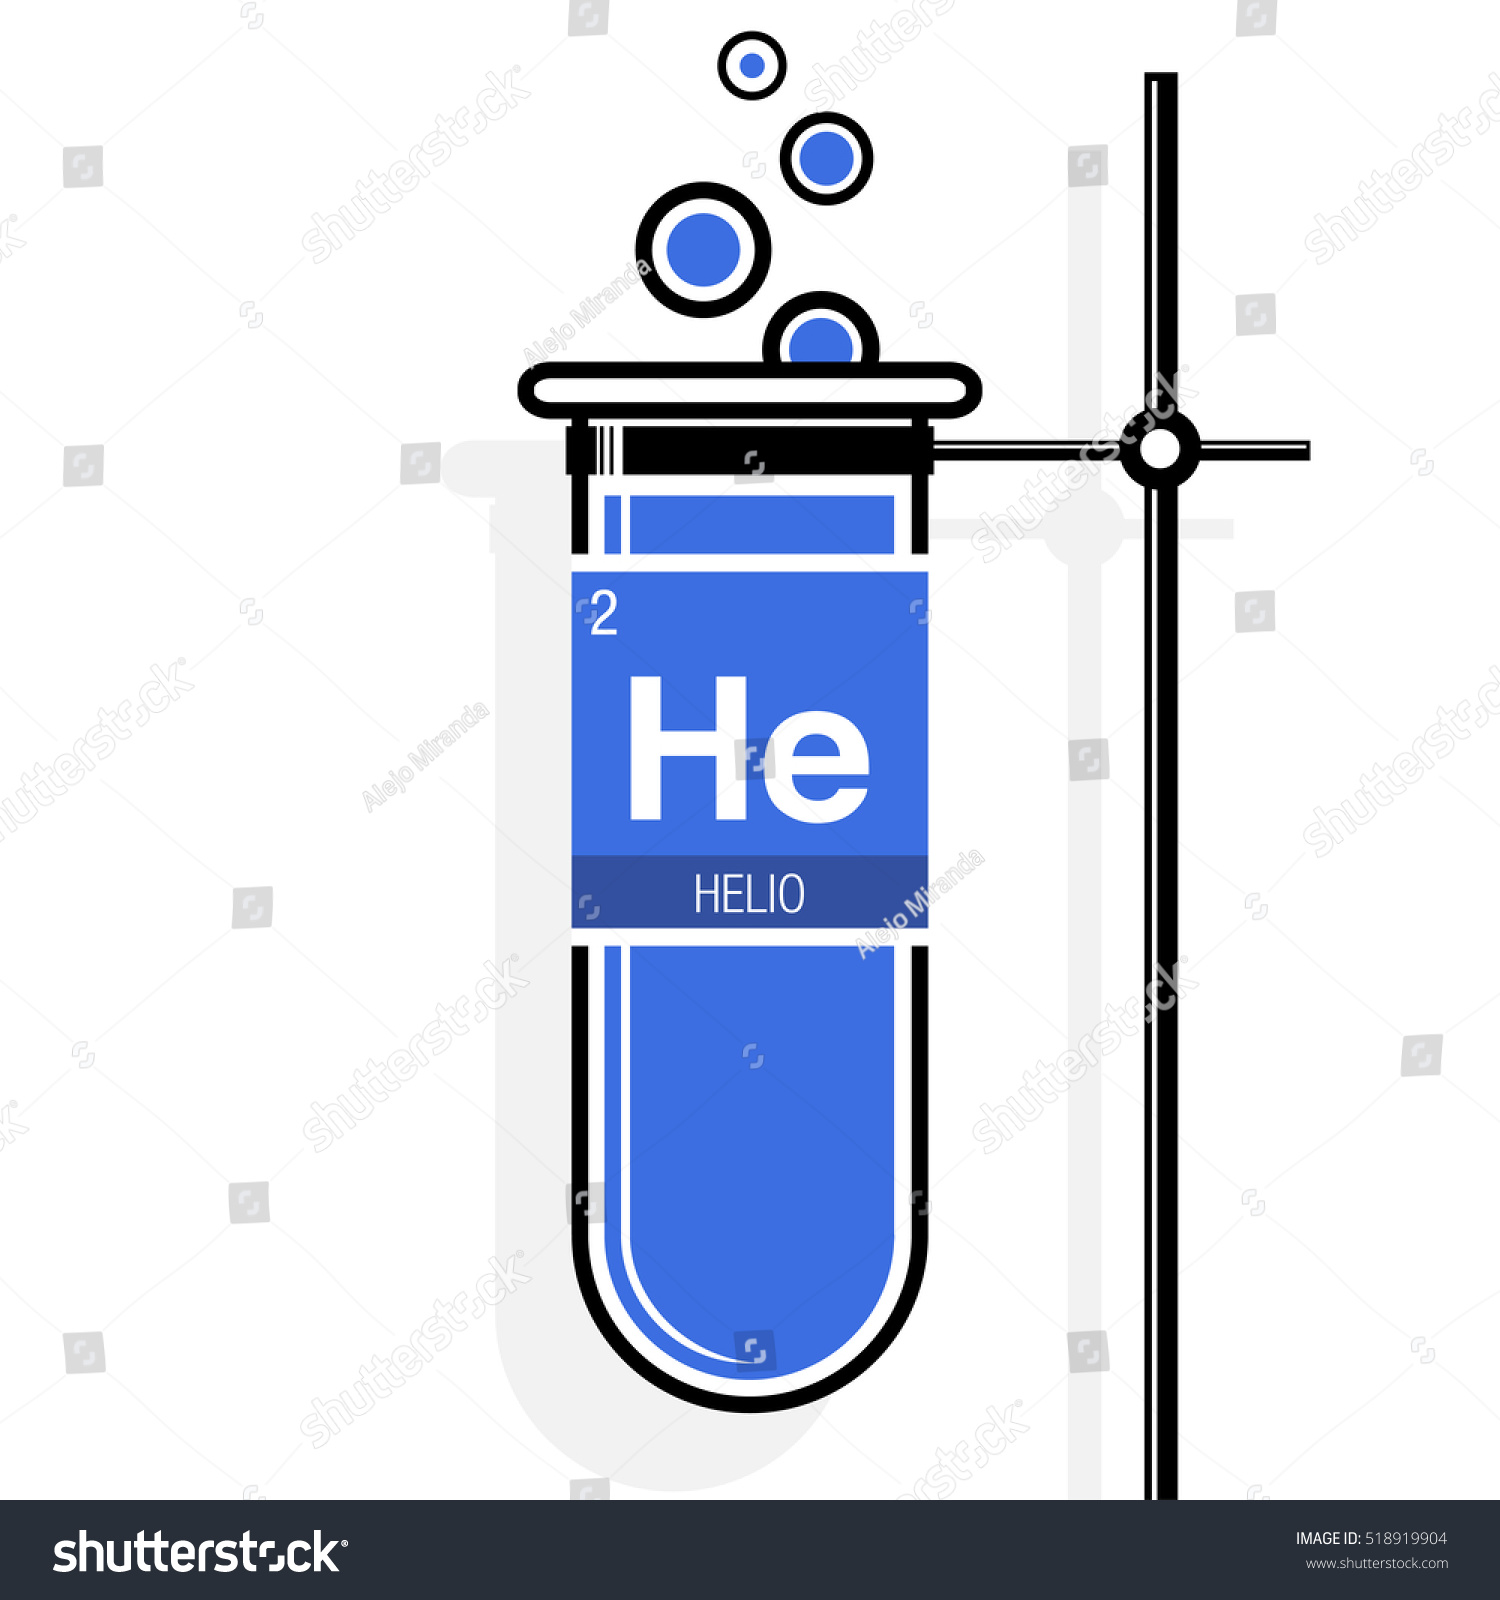 Helio symbol helium spanish language on stock vector 518919904 helio symbol helium in spanish language on label in a blue test tube with gamestrikefo Images